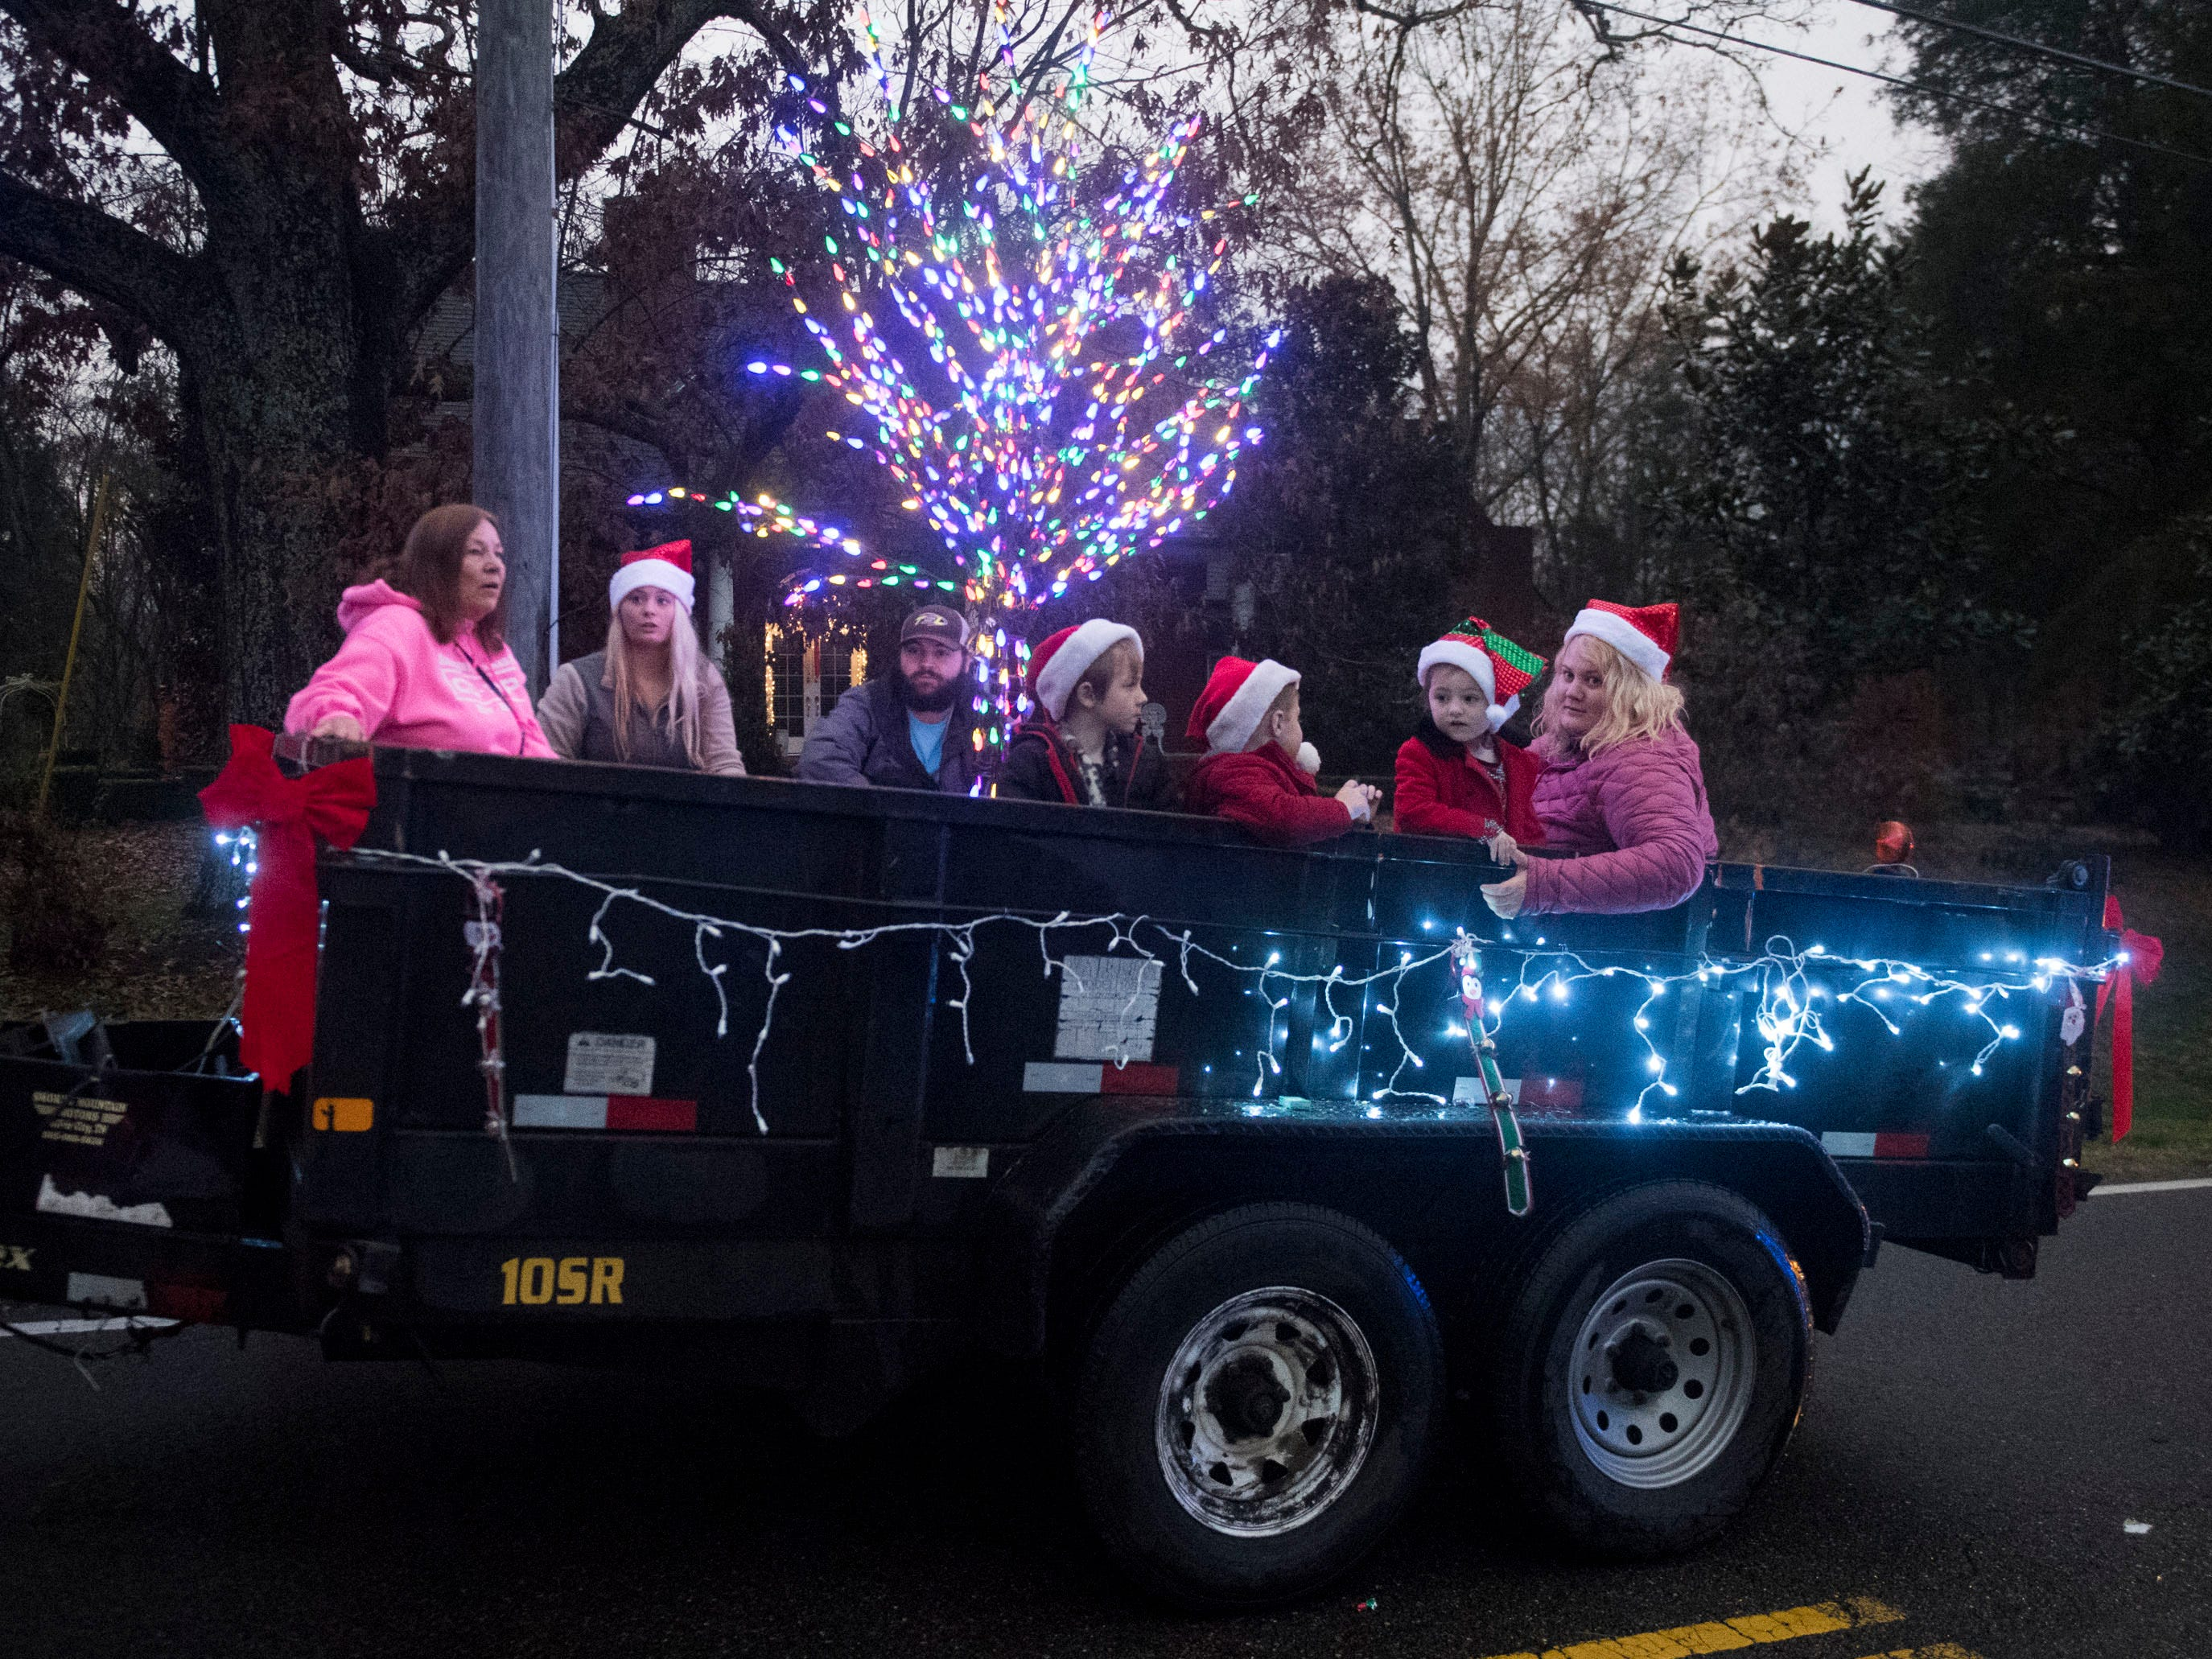 Baumann Tree Service in the Powell Lions Club Christmas Parade on Saturday, December 1, 2018.